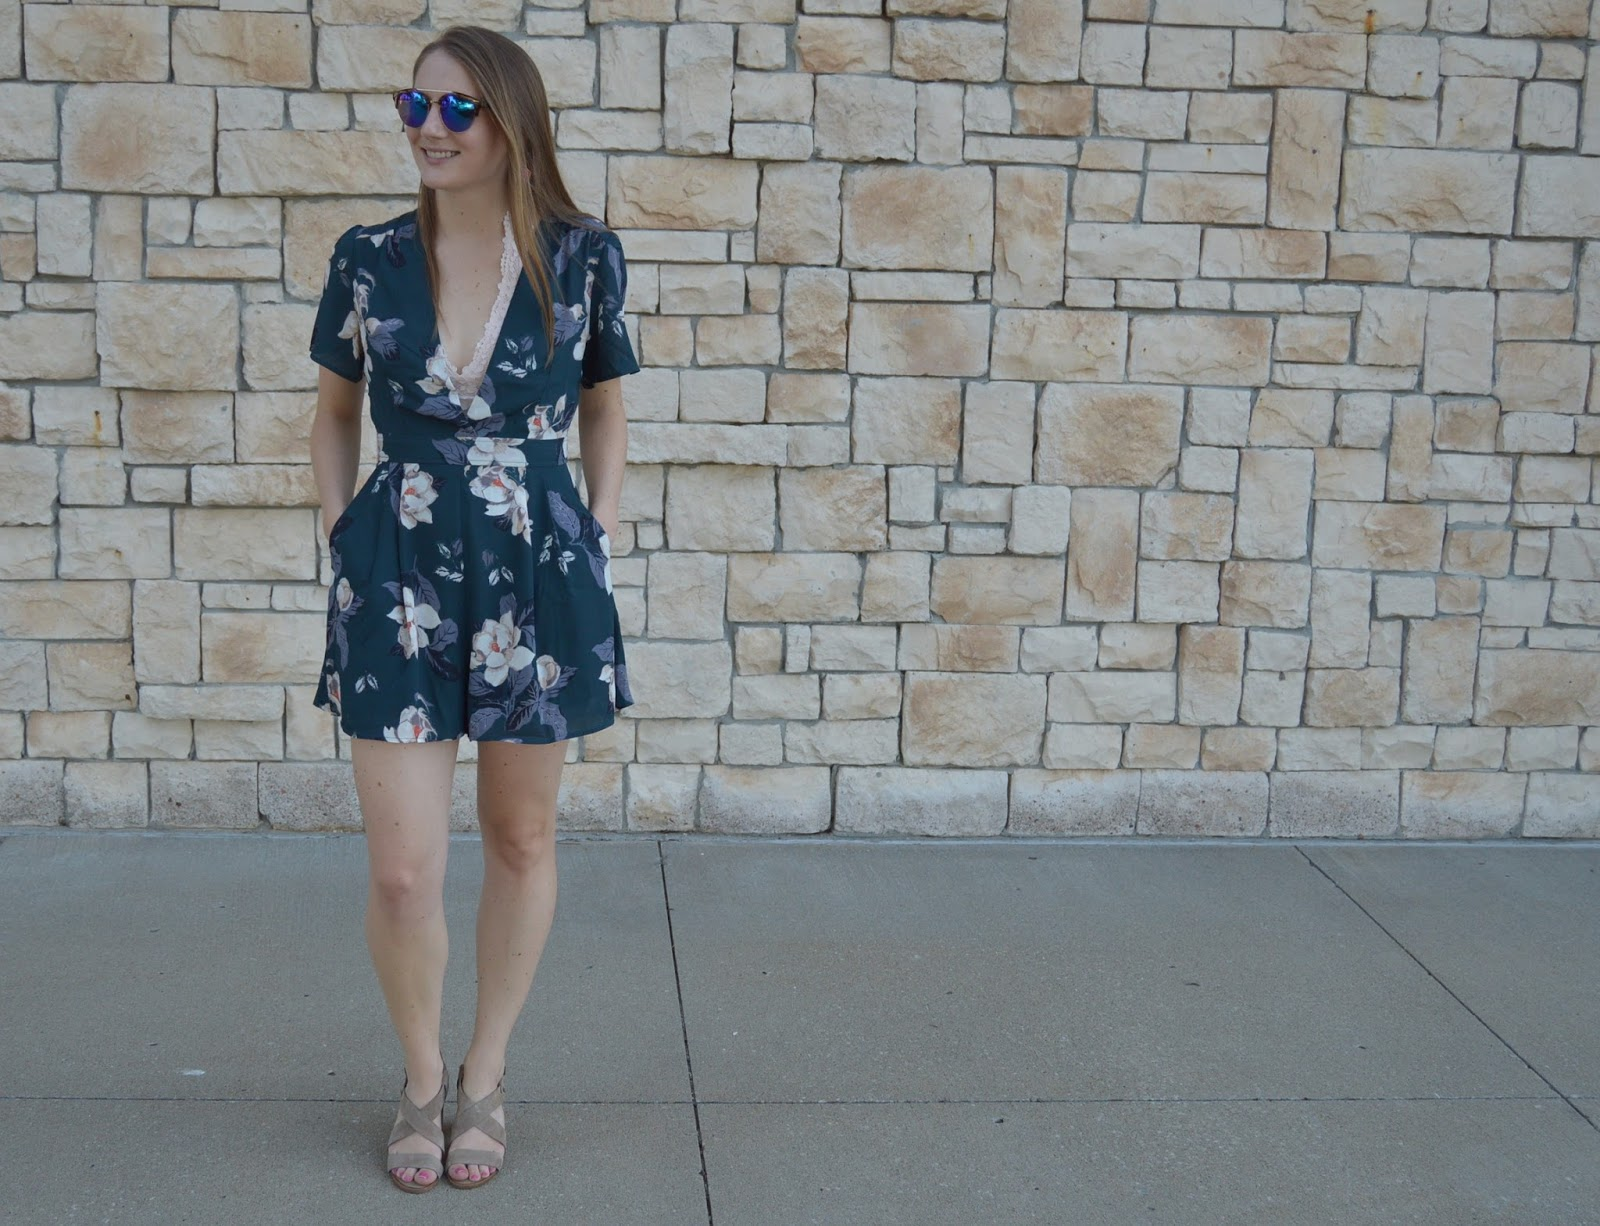 romper with a bralette | how to style a bralette with a romper | teal floral print romper | astr floral print romper | a memory of us | kansas city fashion blog | date night outfit ideas for summer |